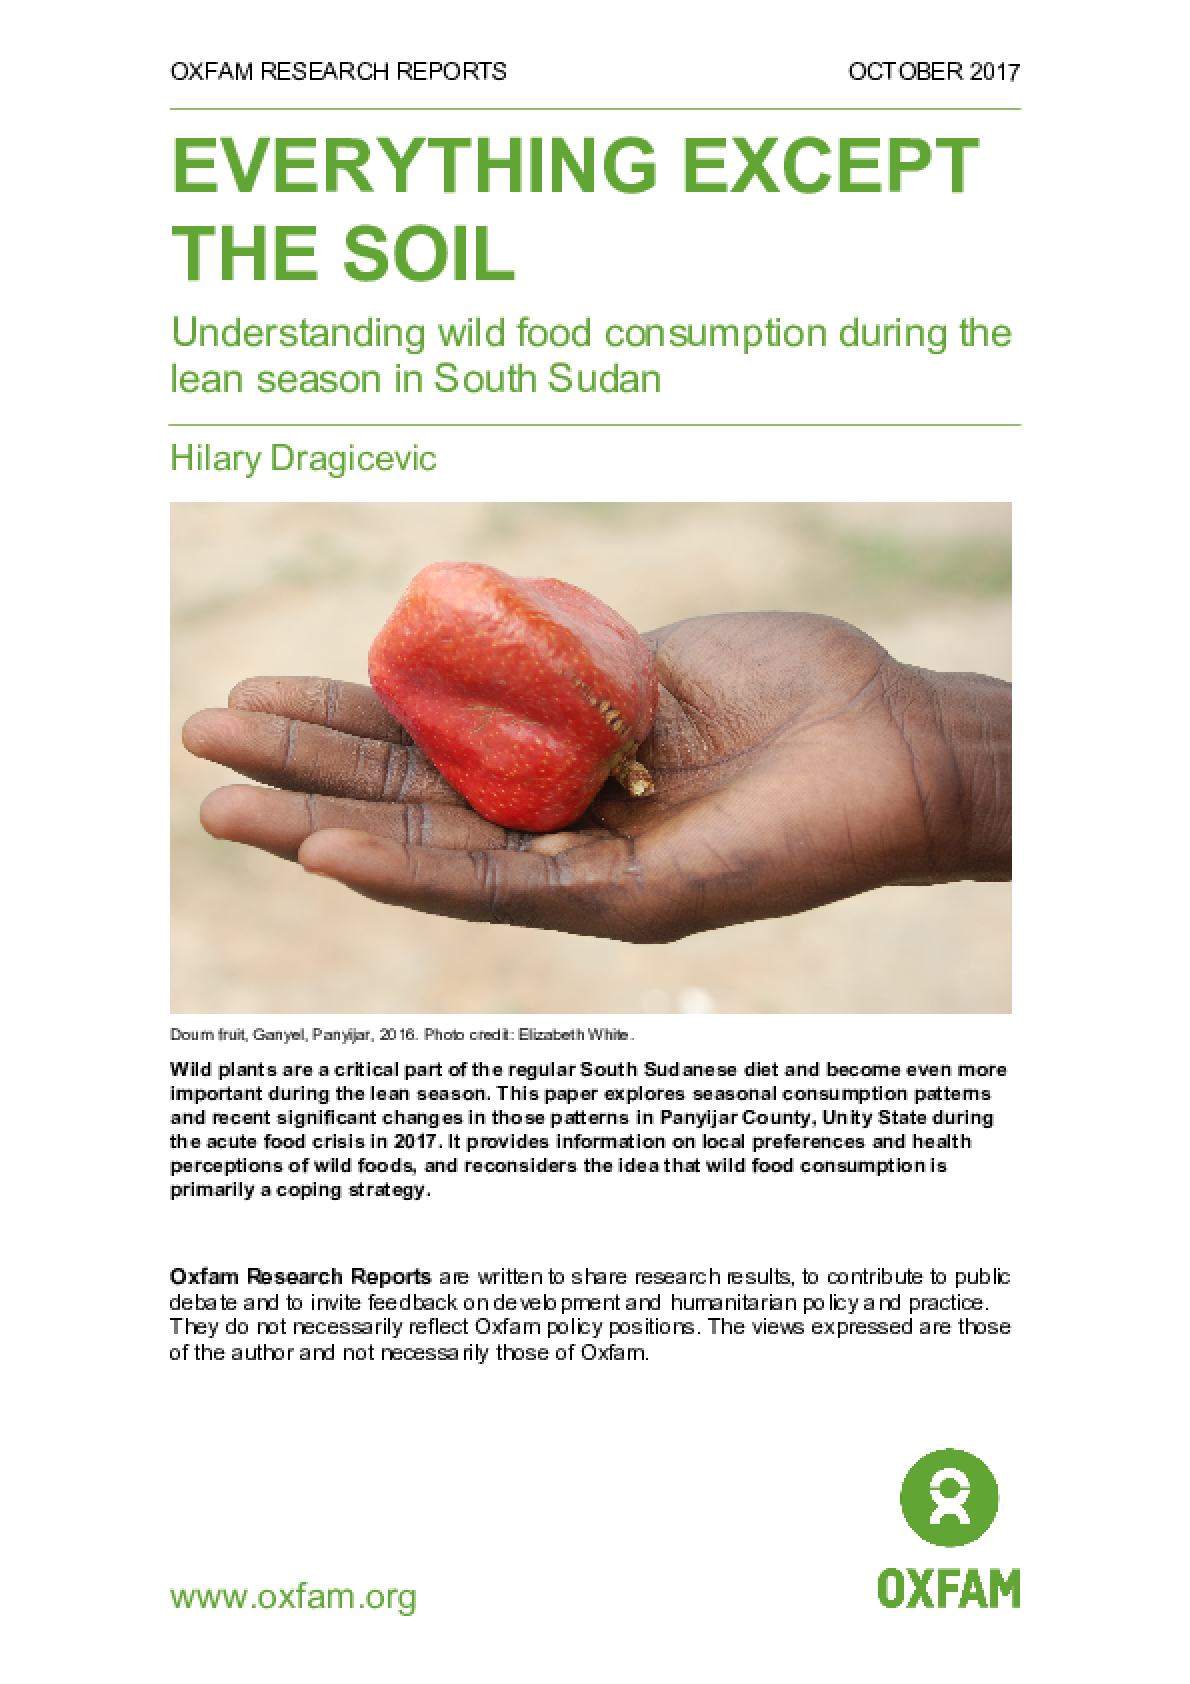 Everything Except the Soil: Understanding wild food consumption during the lean season in South Sudan